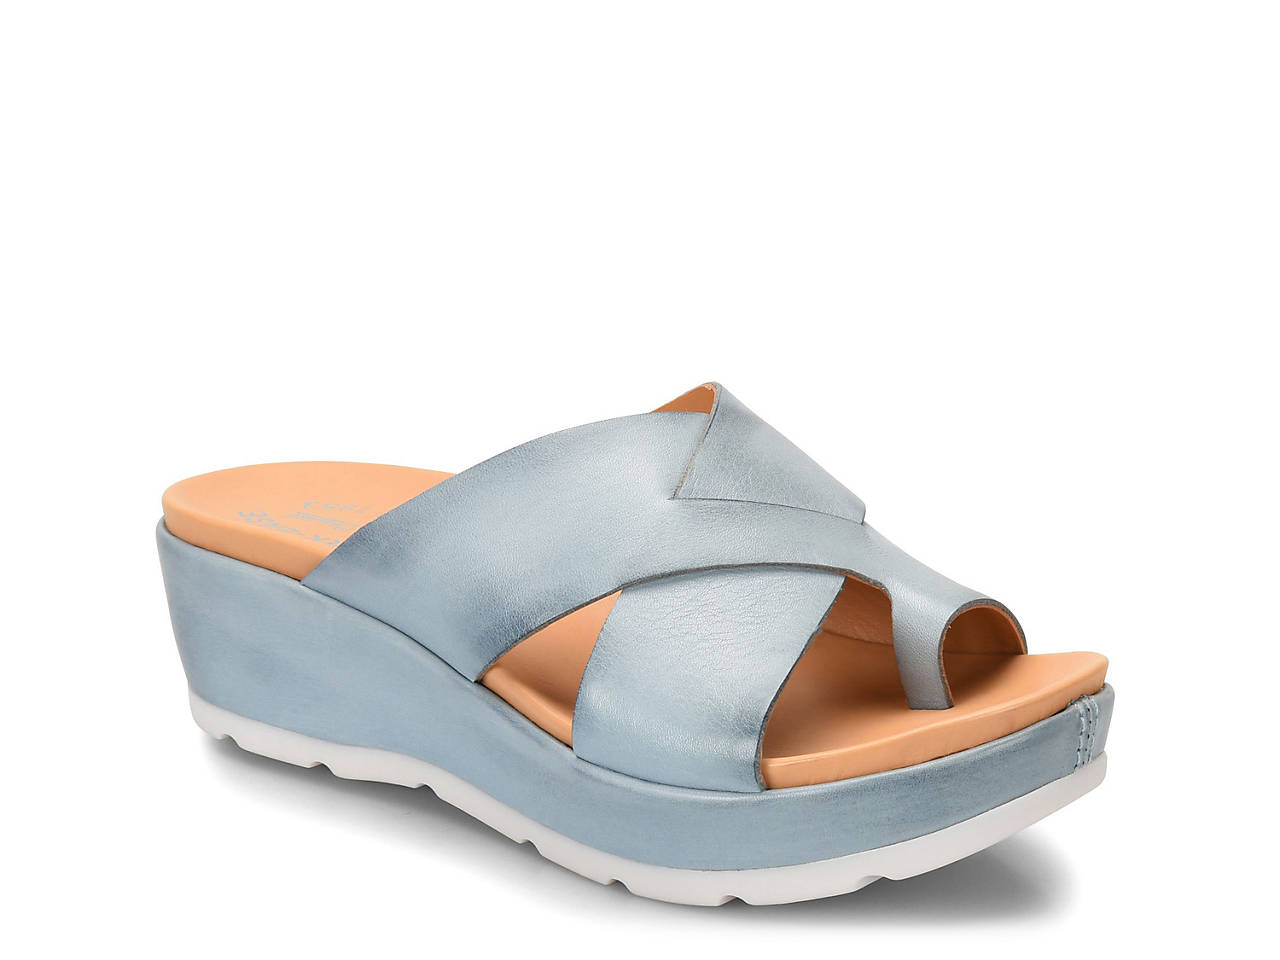 9cc49495ea Kork-Ease Baja Wedge Sandal Women's Shoes | DSW